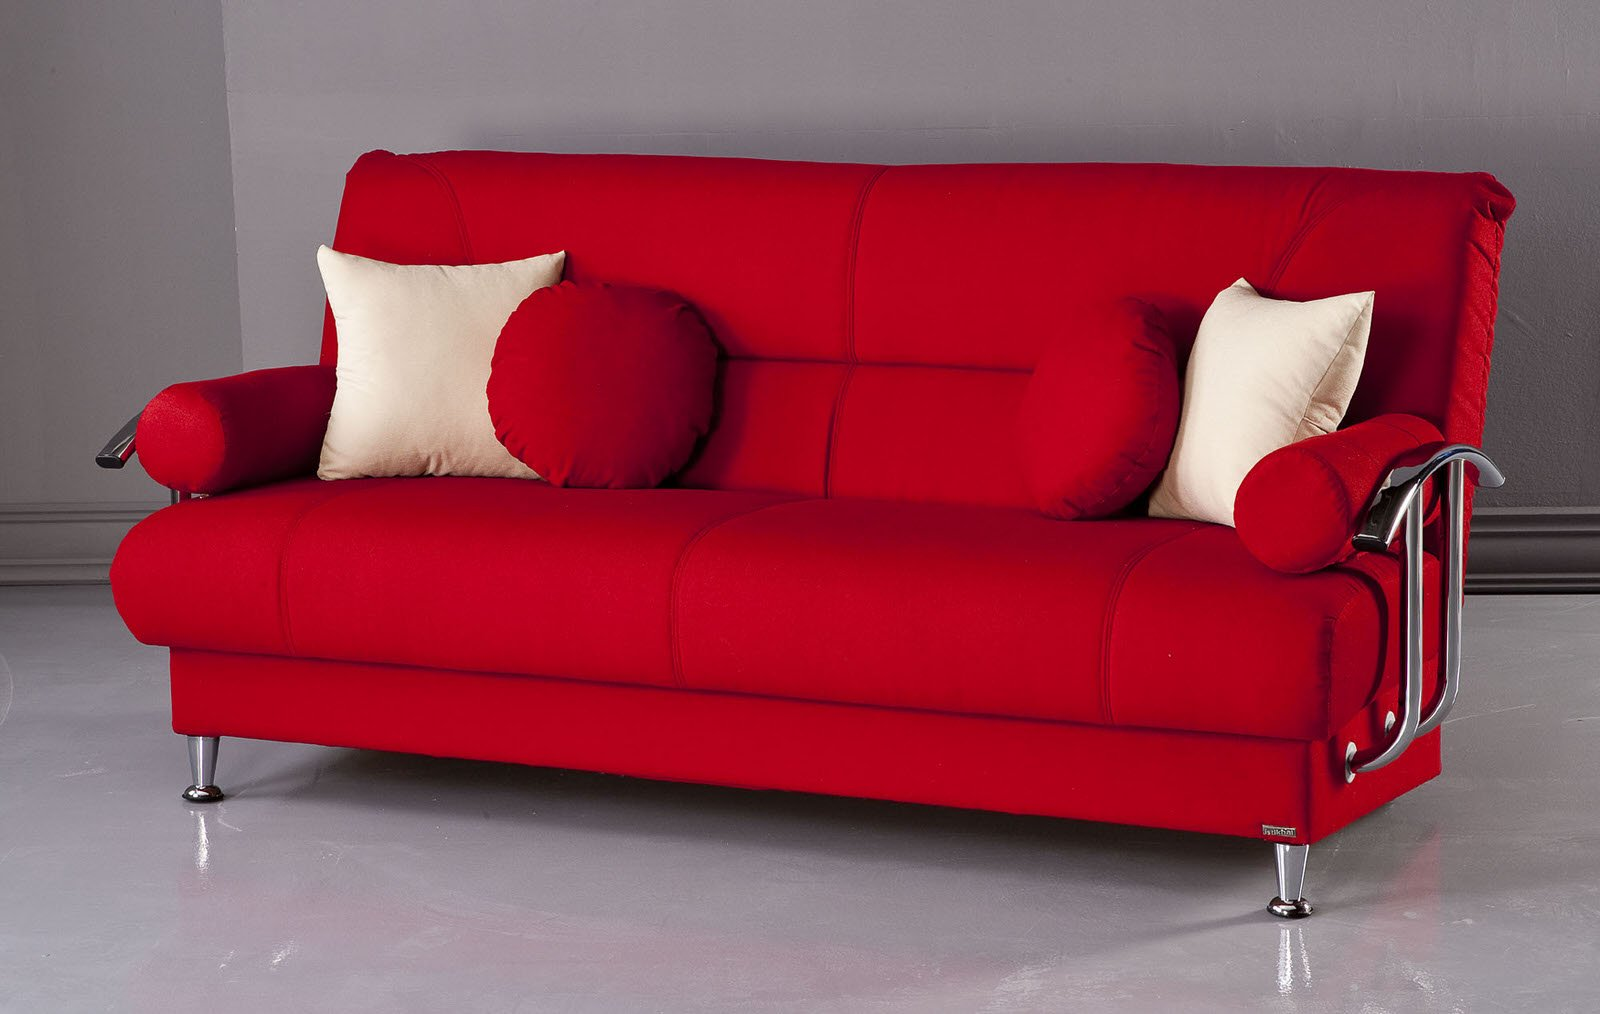 Hollywood Jazz Crimson Red Futon Sofa Bed Bed Mattress Sale